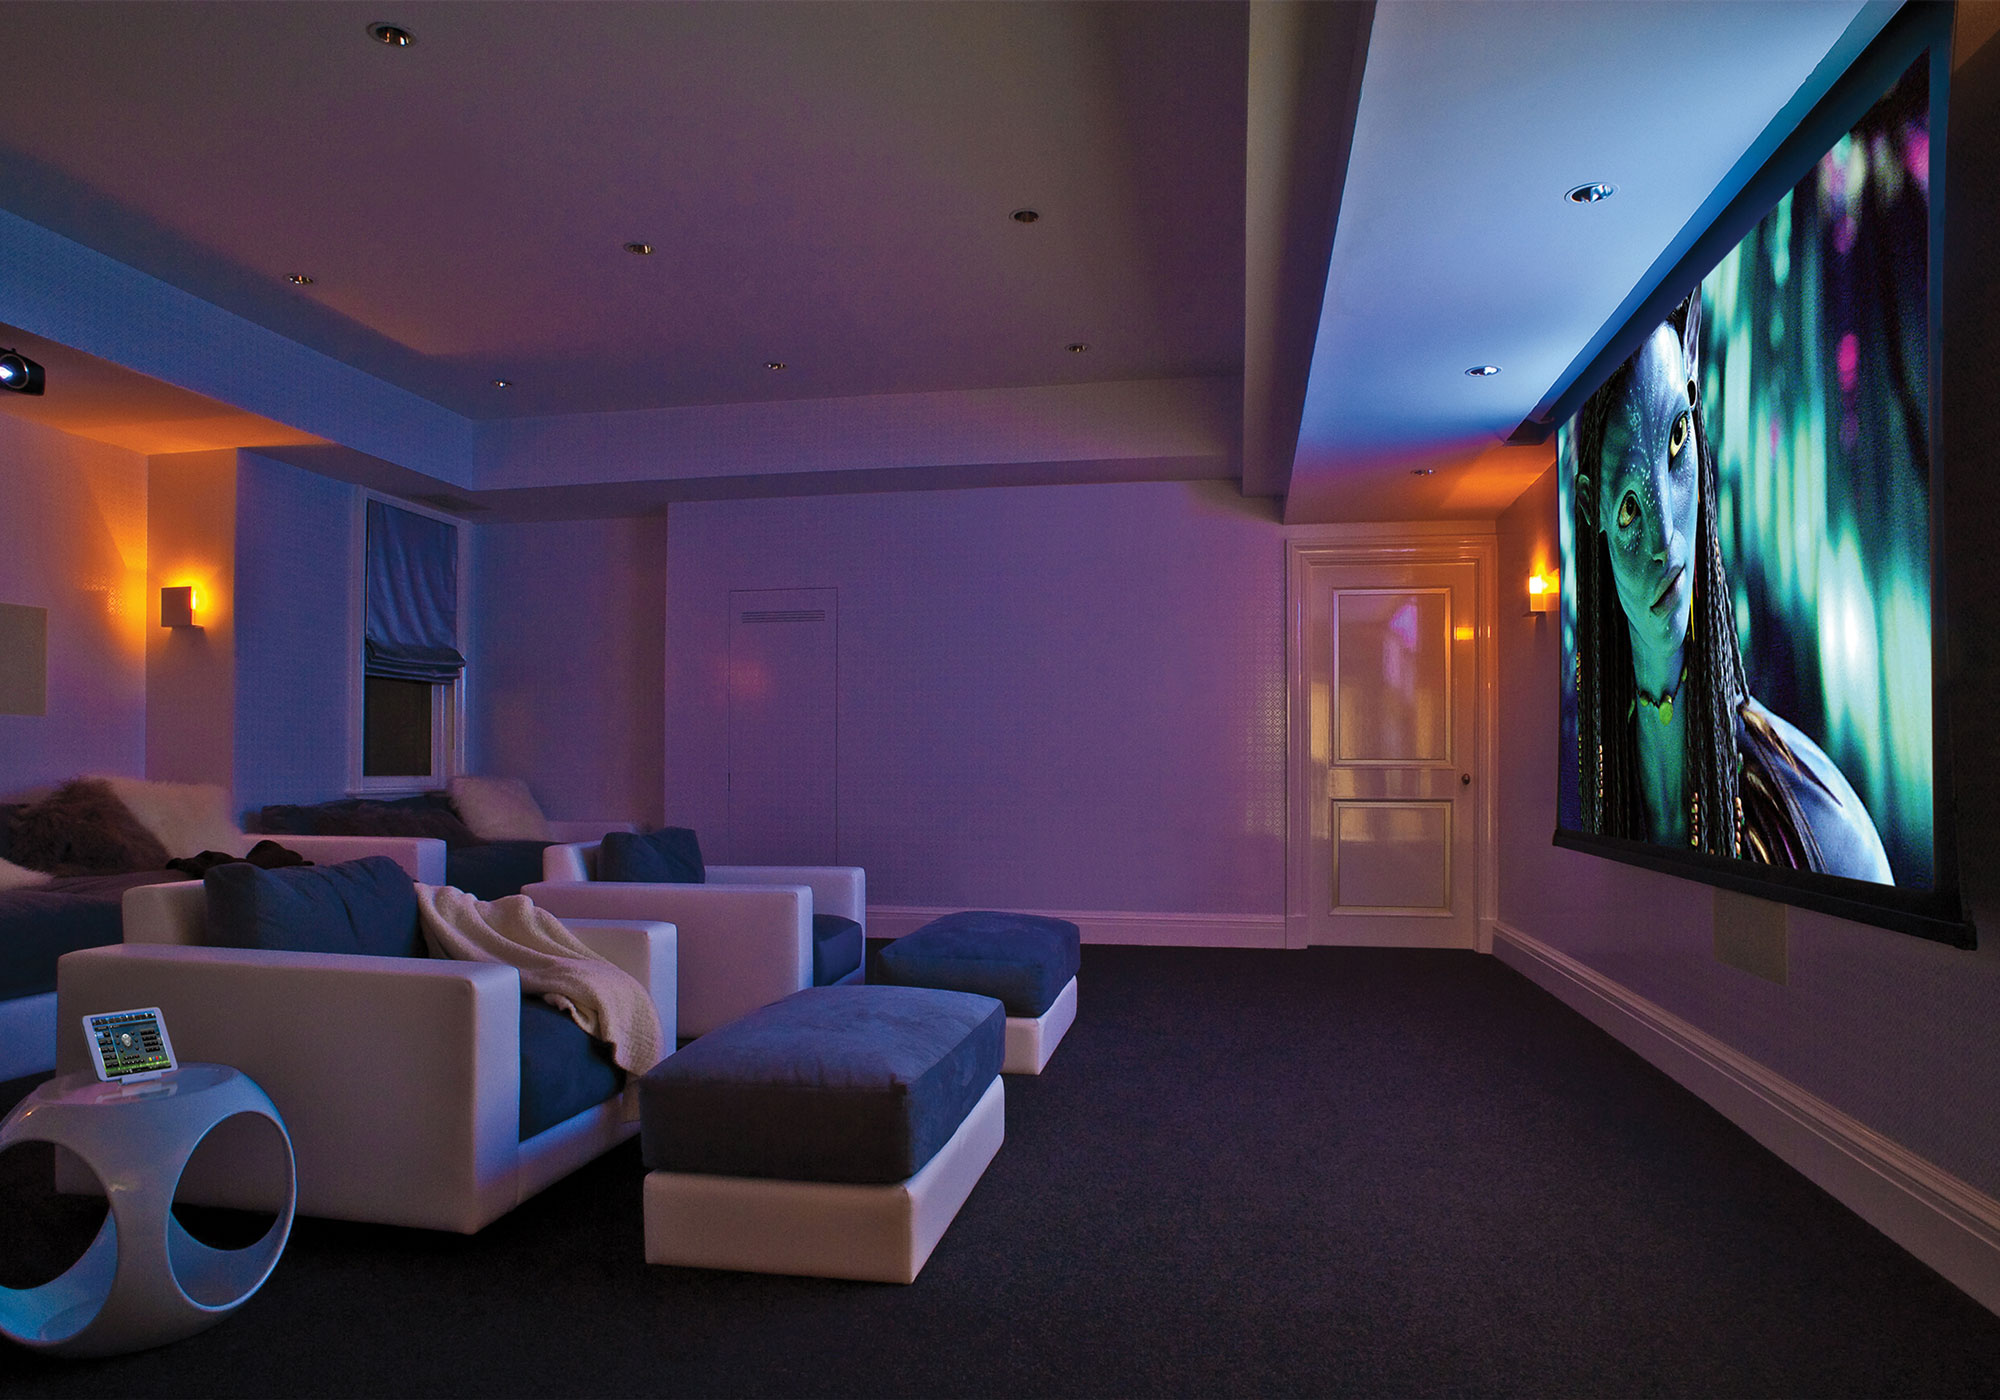 theater, projection system, movie screen, iPad